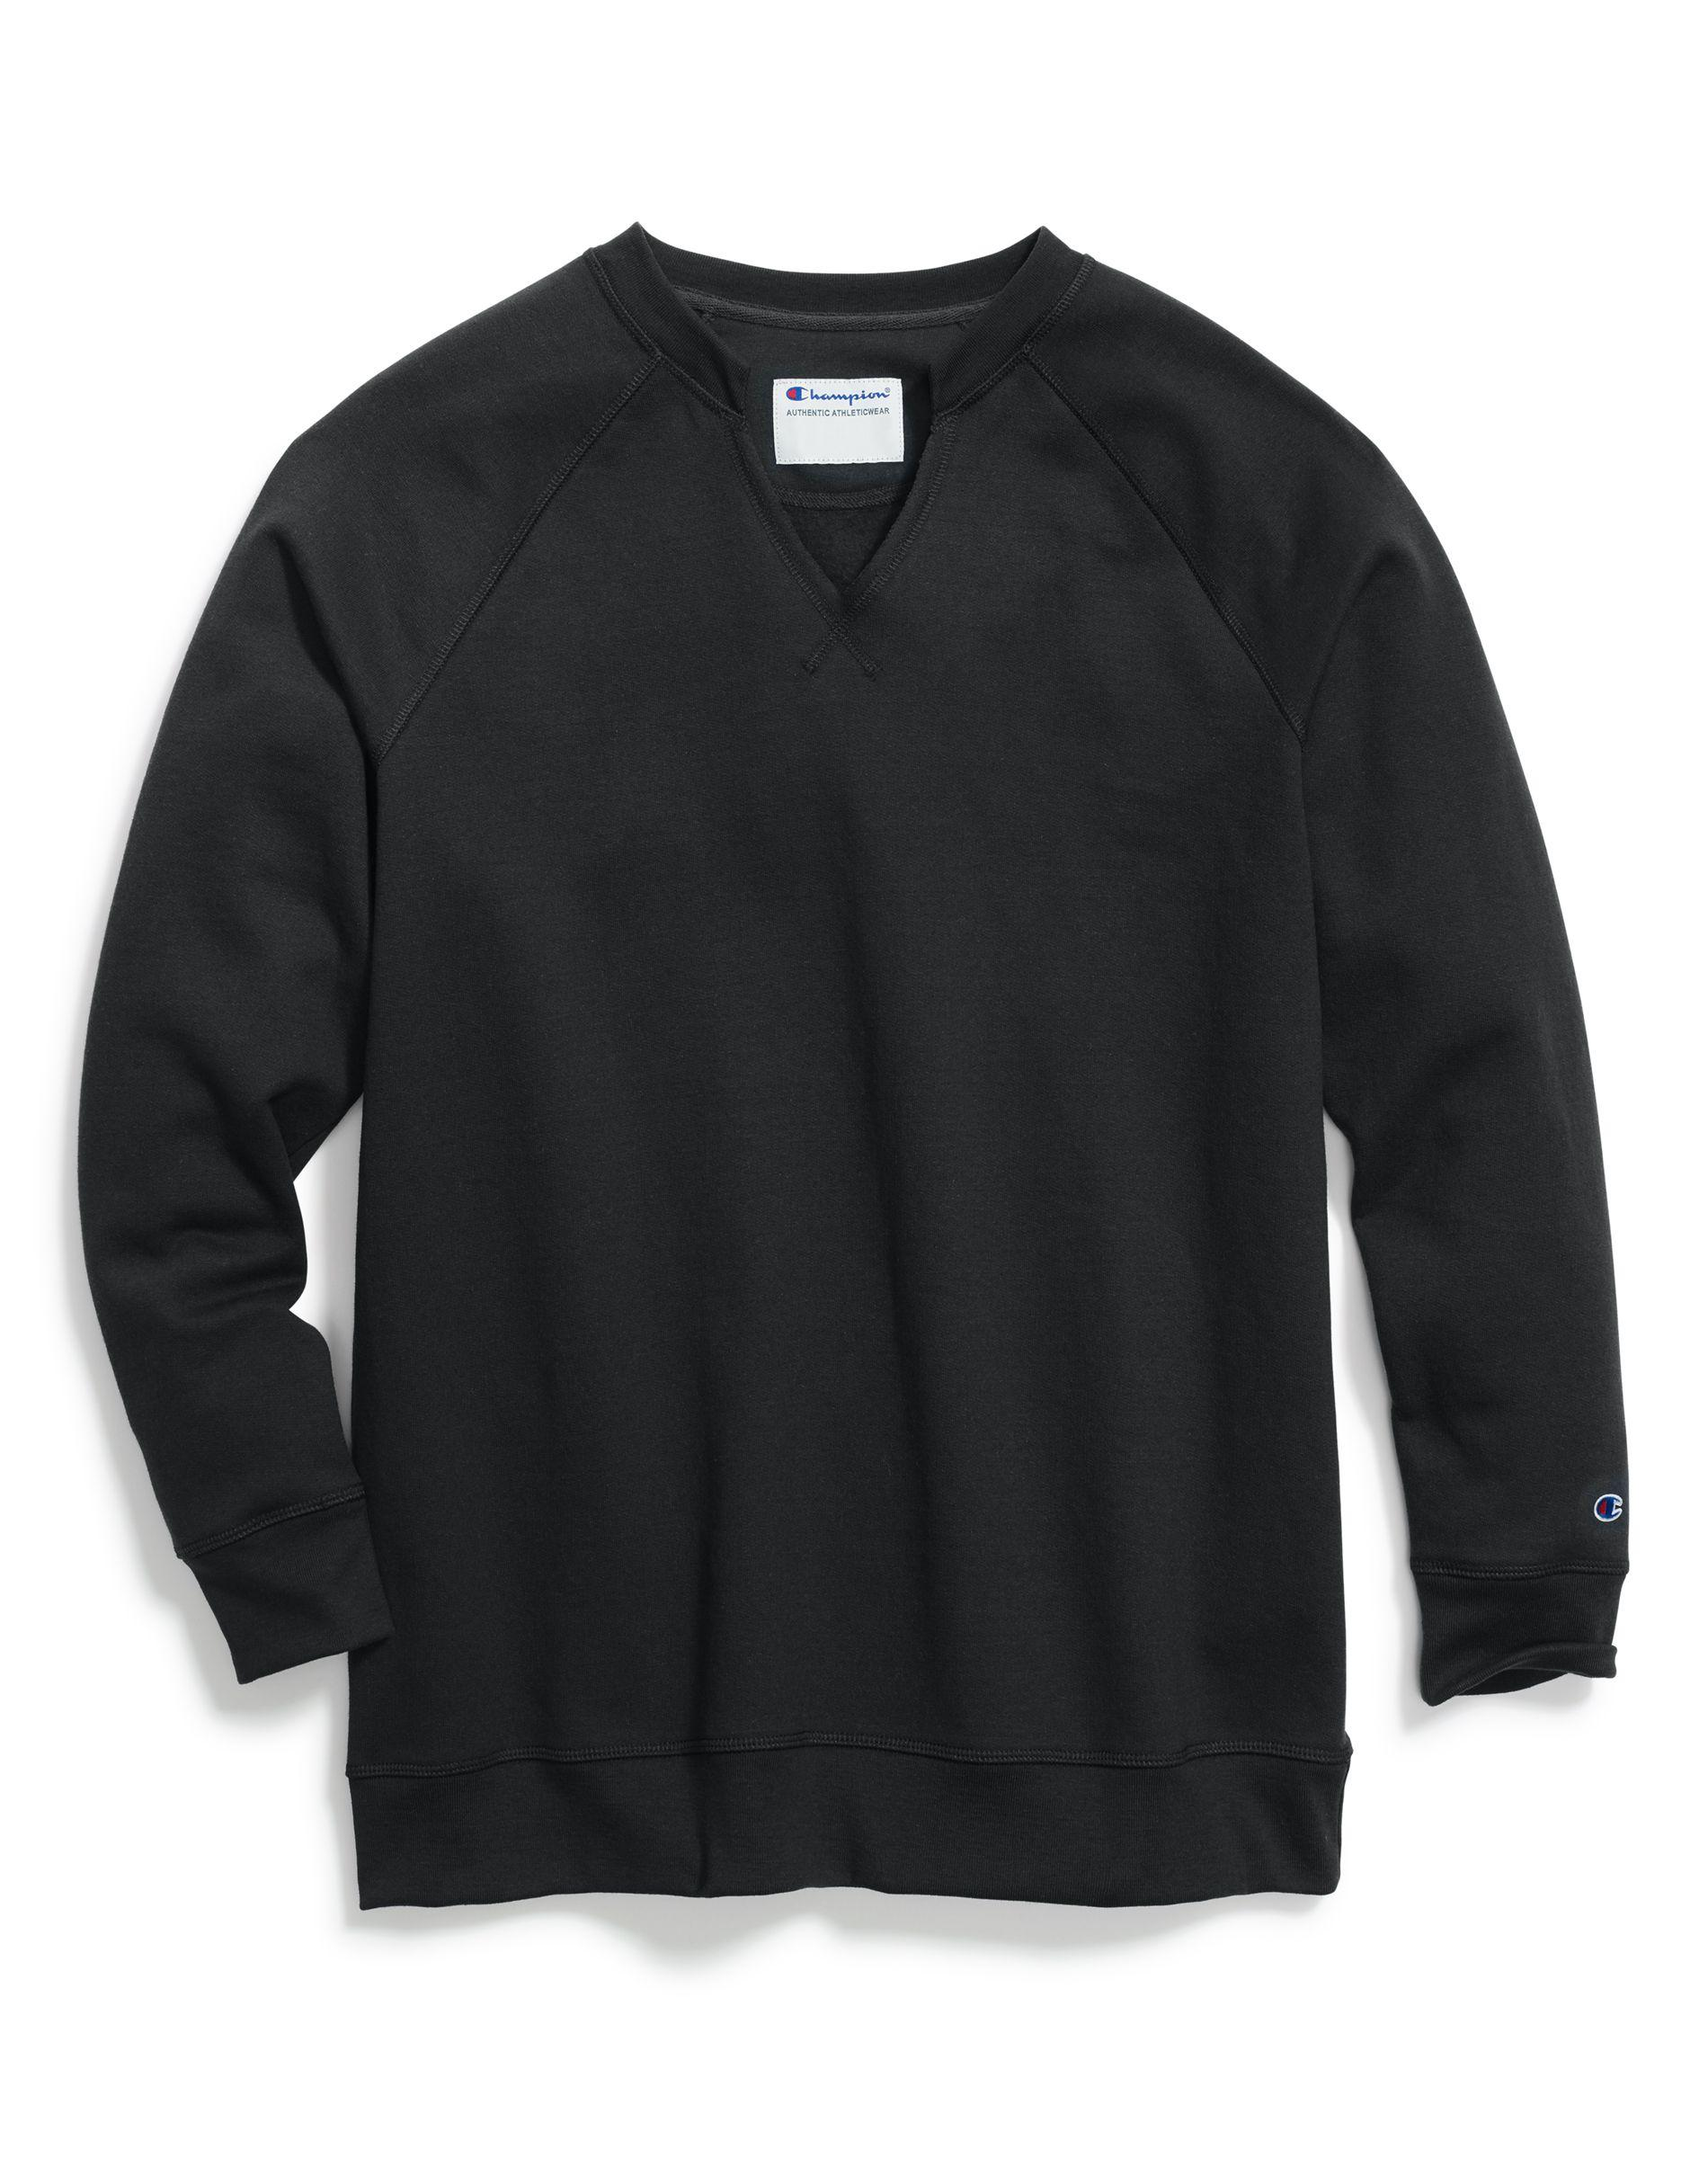 a4e5f5ef6491 Lyst - Champion Powerblend® Fleece Tunic in Black for Men